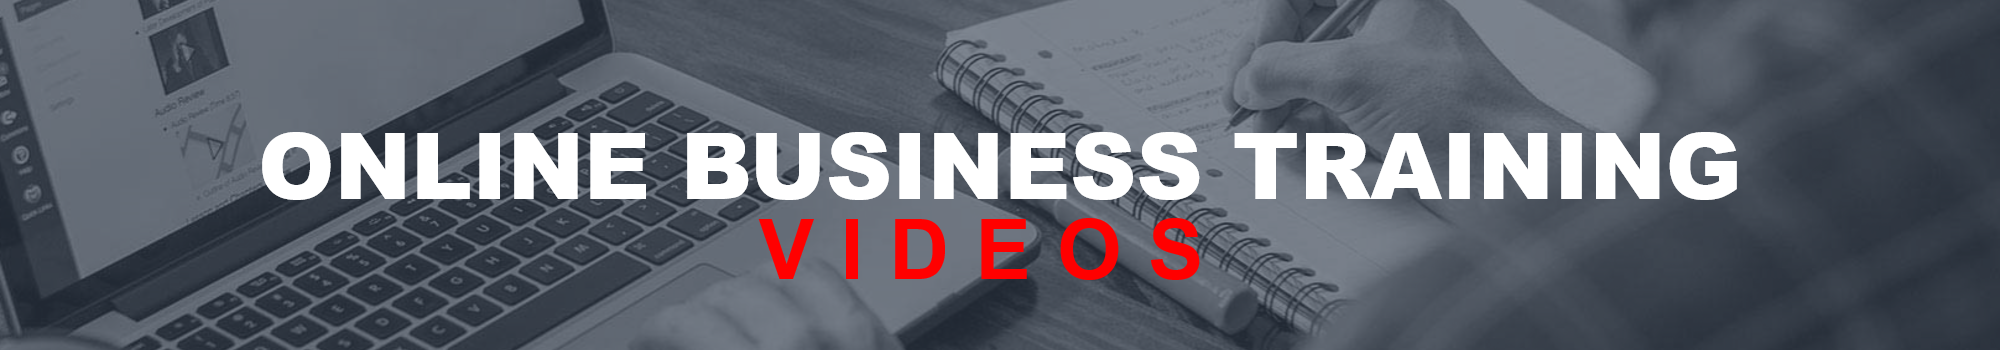 Photo of Online Business Training Videos Header Page Image